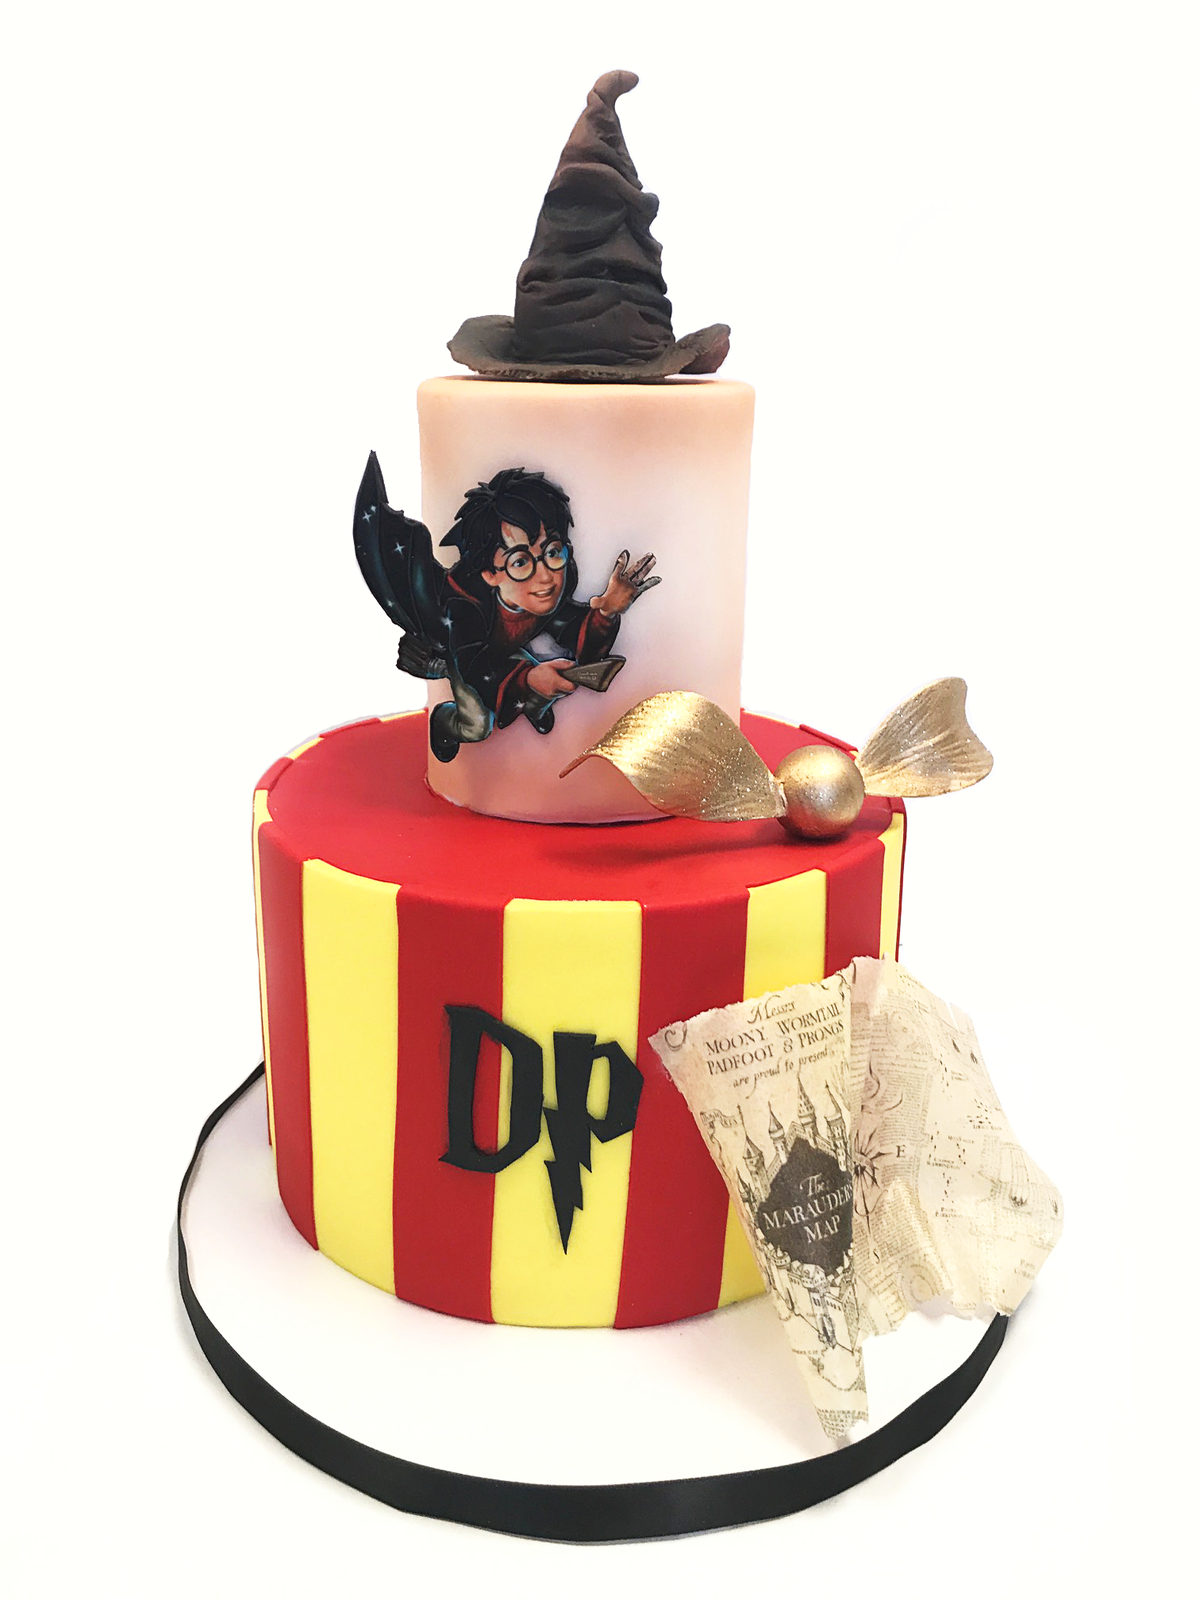 Whippt Desserts - Harry Potter cake 2017